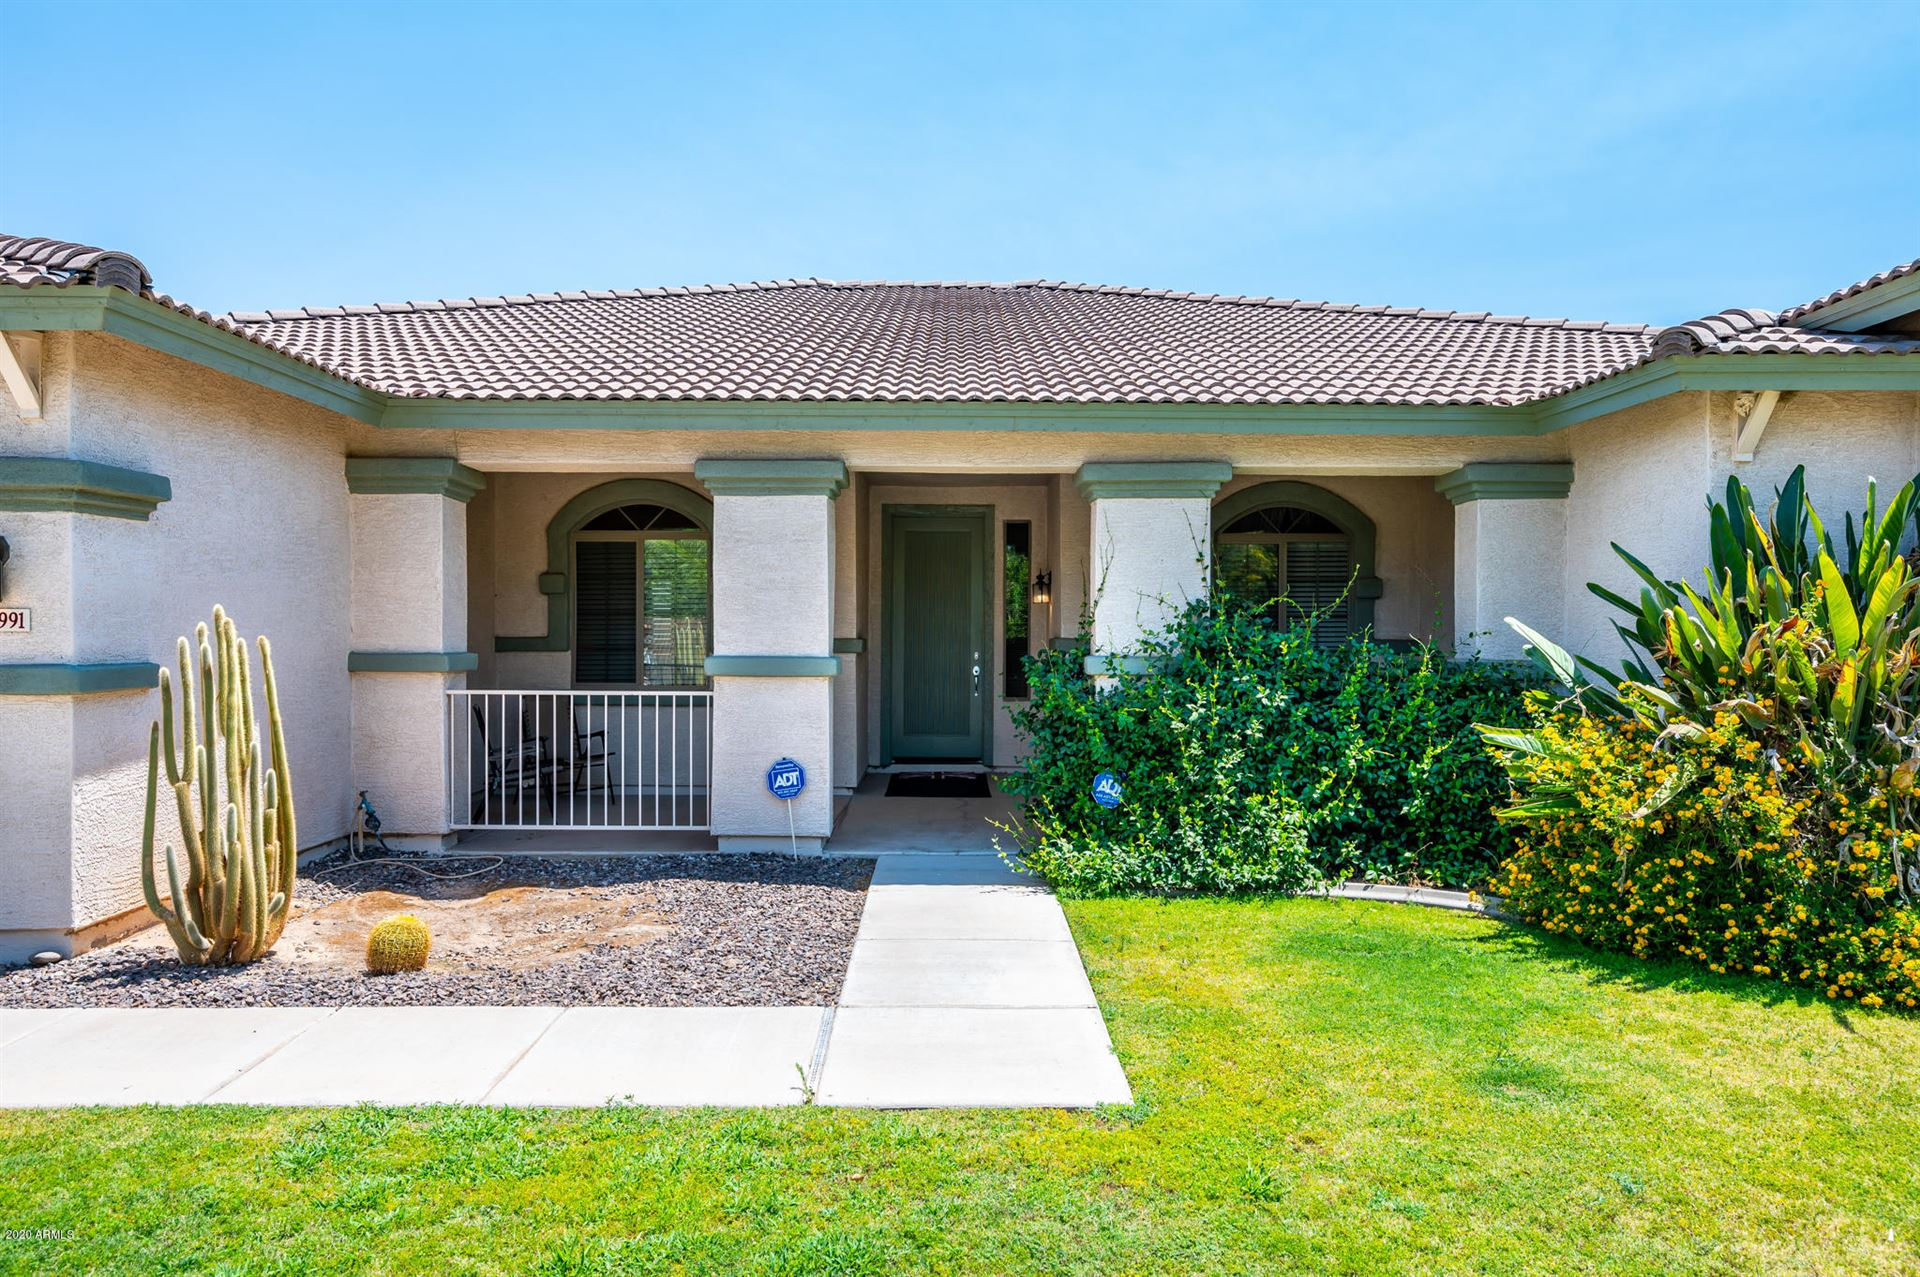 Property Image Of 2991 E Beechnut Place In Chandler, Az